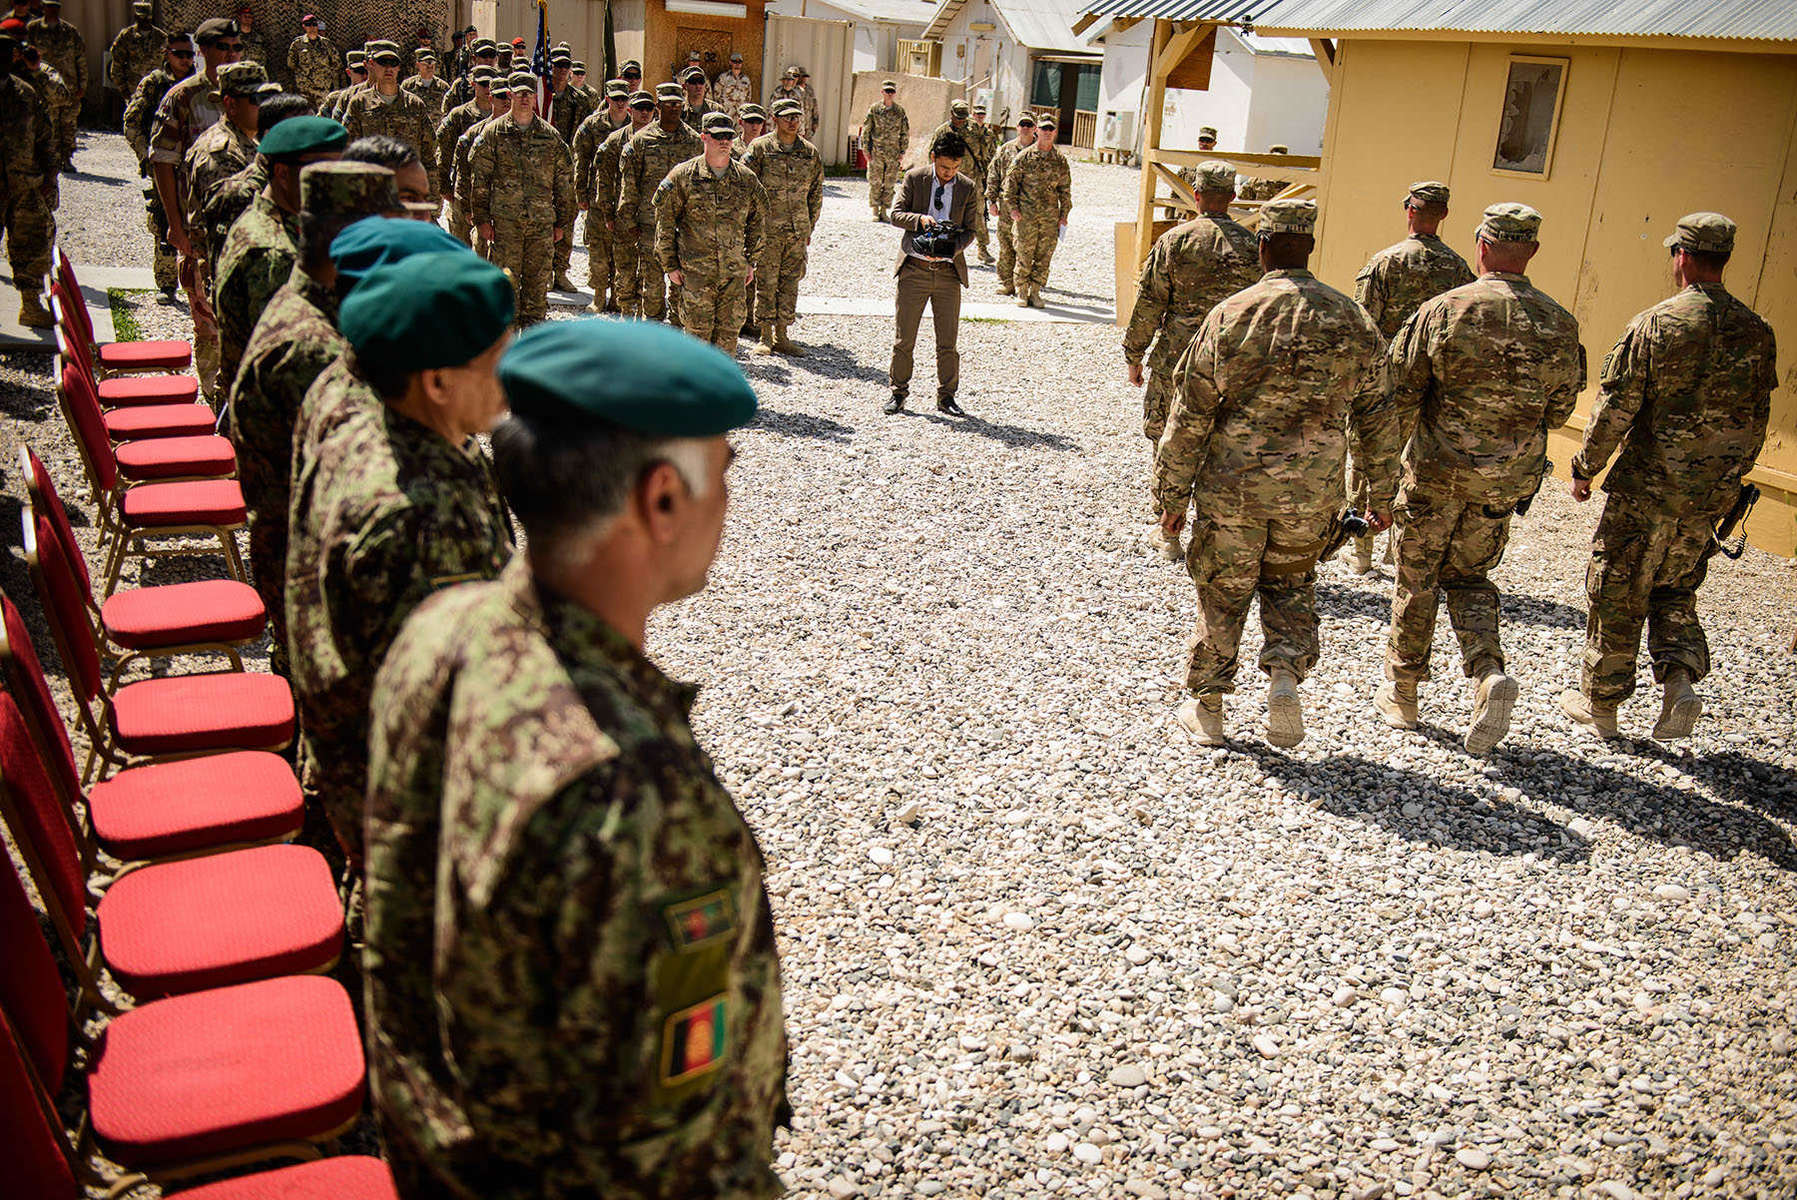 Second Place | Multiple PhotosAndrew Craft, The Fayetteville ObserverParatroopers with B Company, 2nd Battalion, 508th Parachute Infantry Regiment, walk away after taking down the last American flag to fly over Camp Mike Spann Sunday, April 27, 2014, during the ceremony that hands over control of the camp to the Afghan National Army. Afghan Col. M. Ayel Rahimi, head of operations for the 209th Corps, said the transfer of Spann was an important day for the Afghan army. {quote}We will try to keep it - to improve it,{quote} he said.